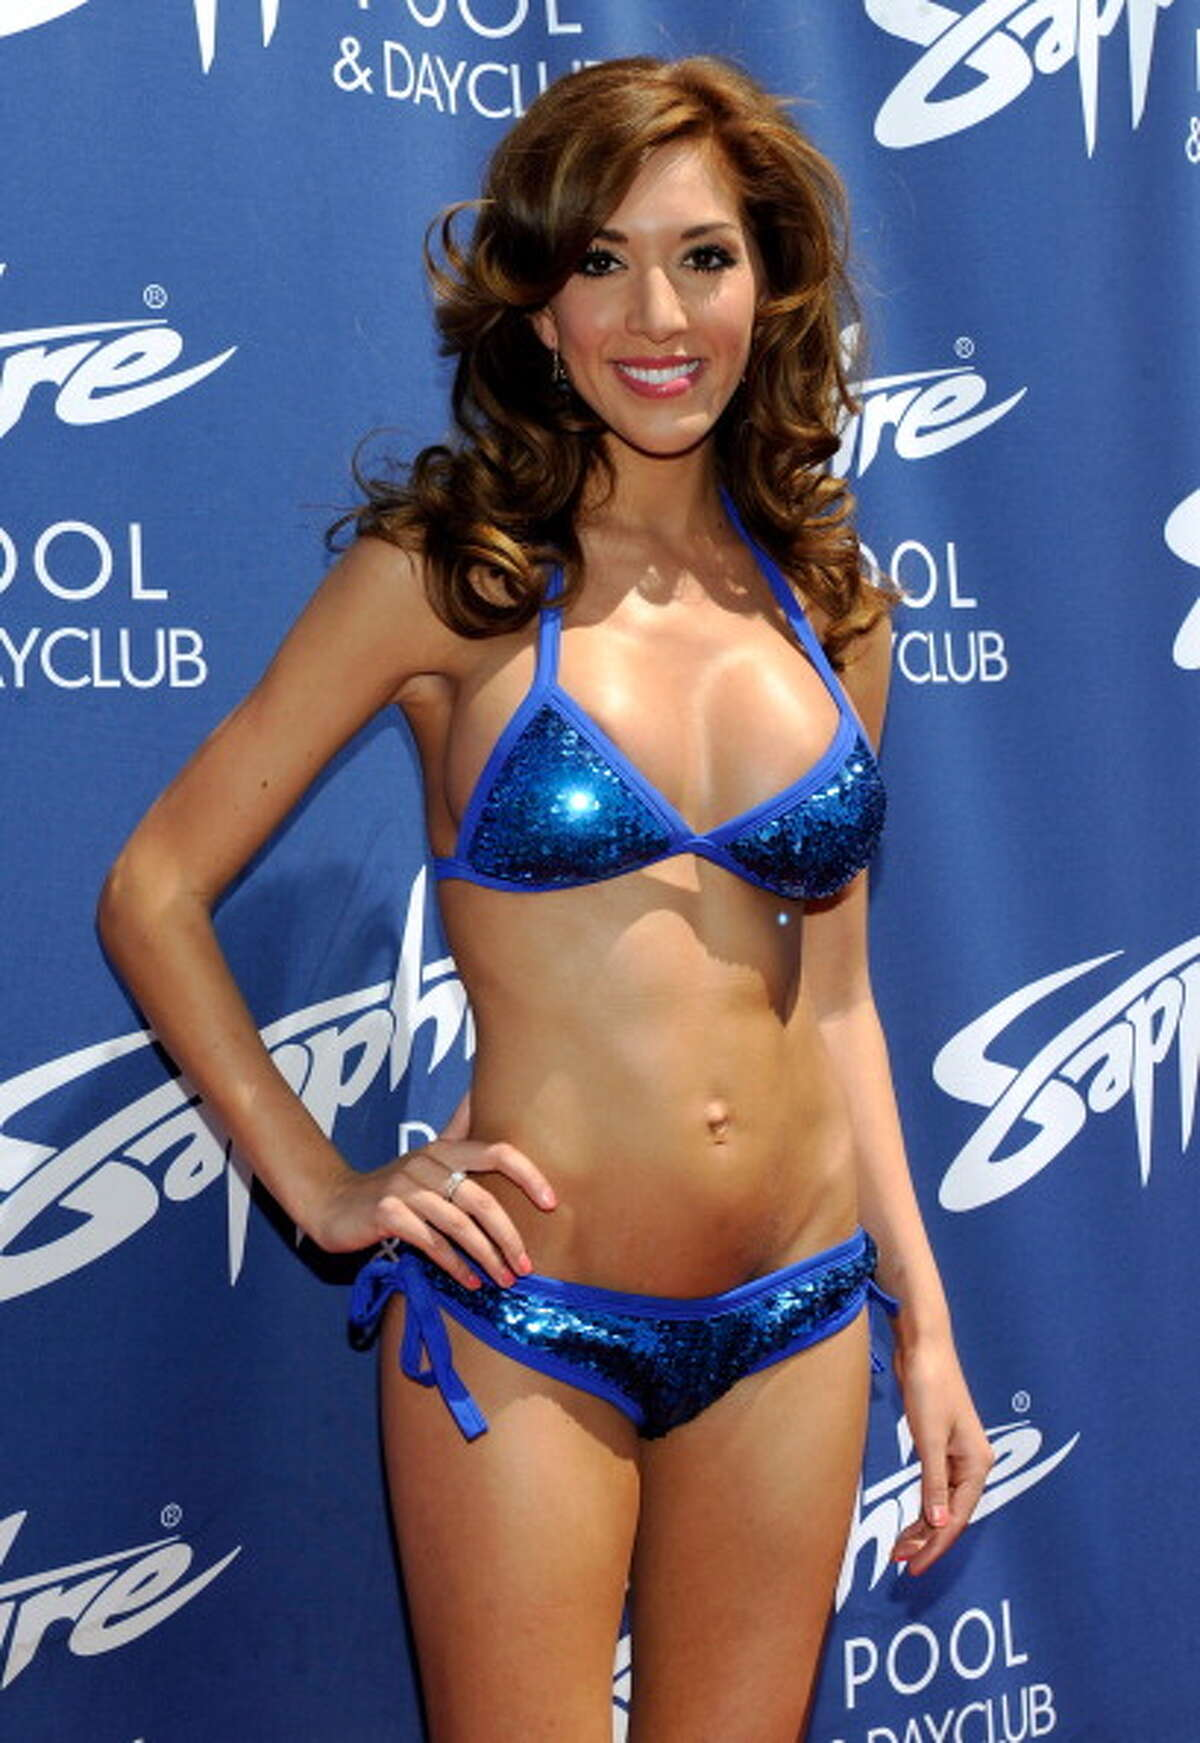 LAS VEGAS, NV - JUNE 14: Television personality Farrah Abraham arrives at the Sapphire Pool & Day Club on June 14, 2013 in Las Vegas, Nevada.